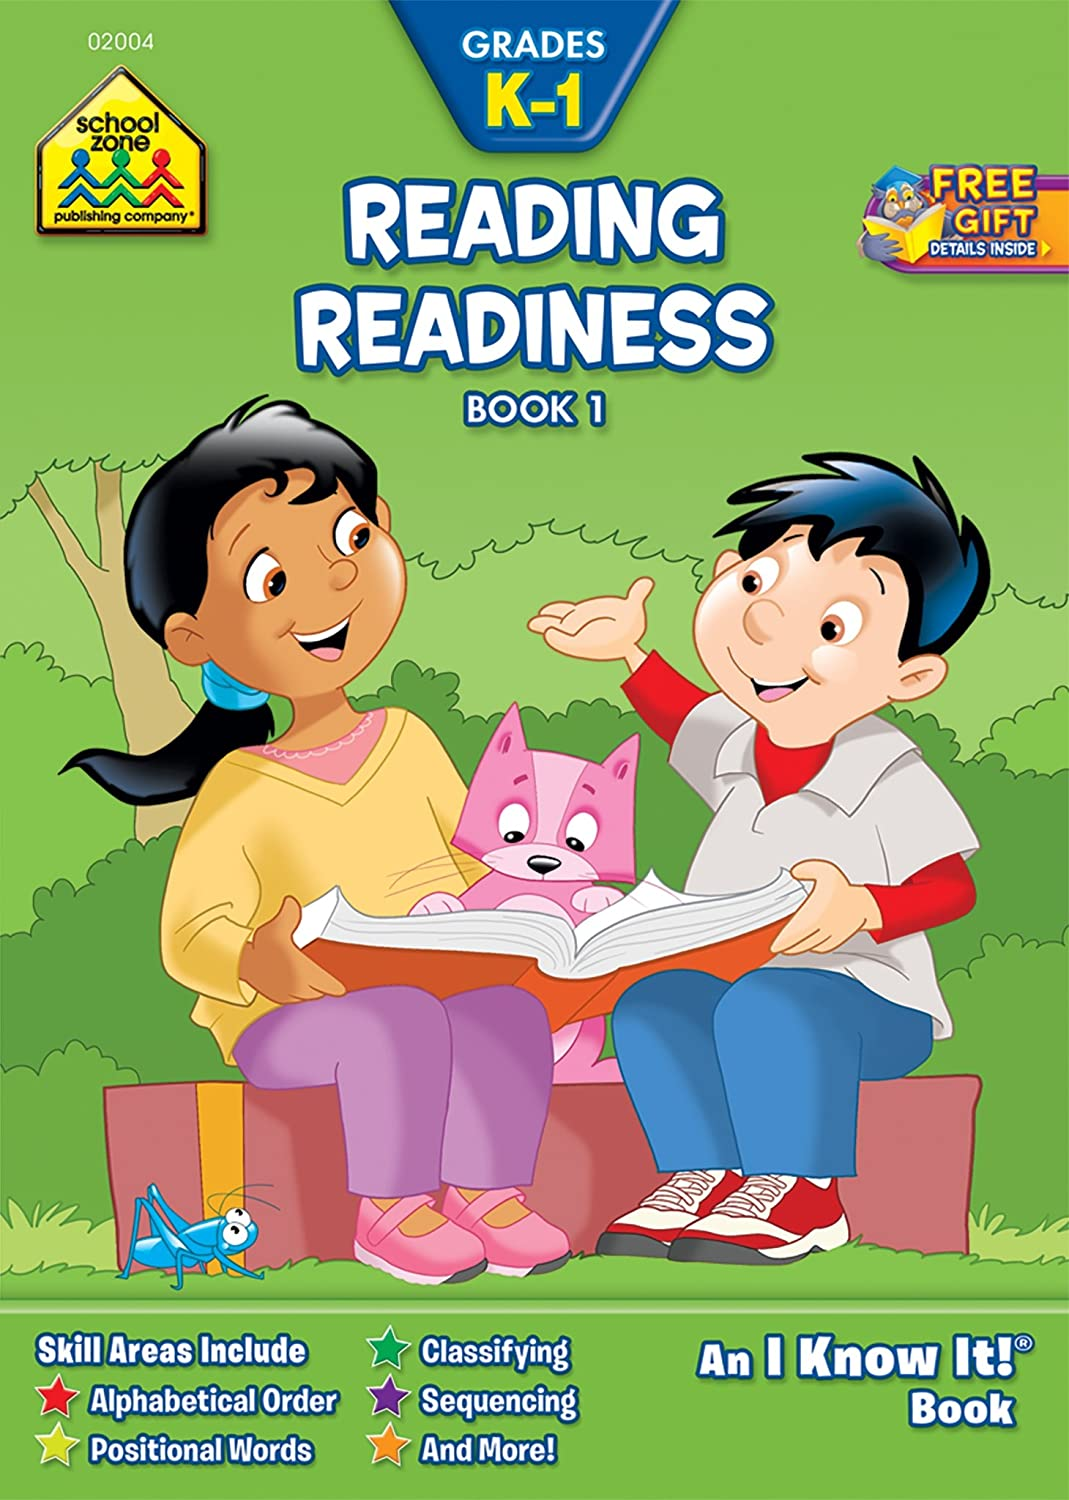 Reading Readiness Book 2: I Know It! Workbooks Kate Flanagan Barbara Gregorich Schoolzone Publishing 0938256041 Children' s 4-8 - Education Concepts - General Juvenile Nonfiction Study Aids - Reading Juvenile Nonfiction / General Study Aids - General